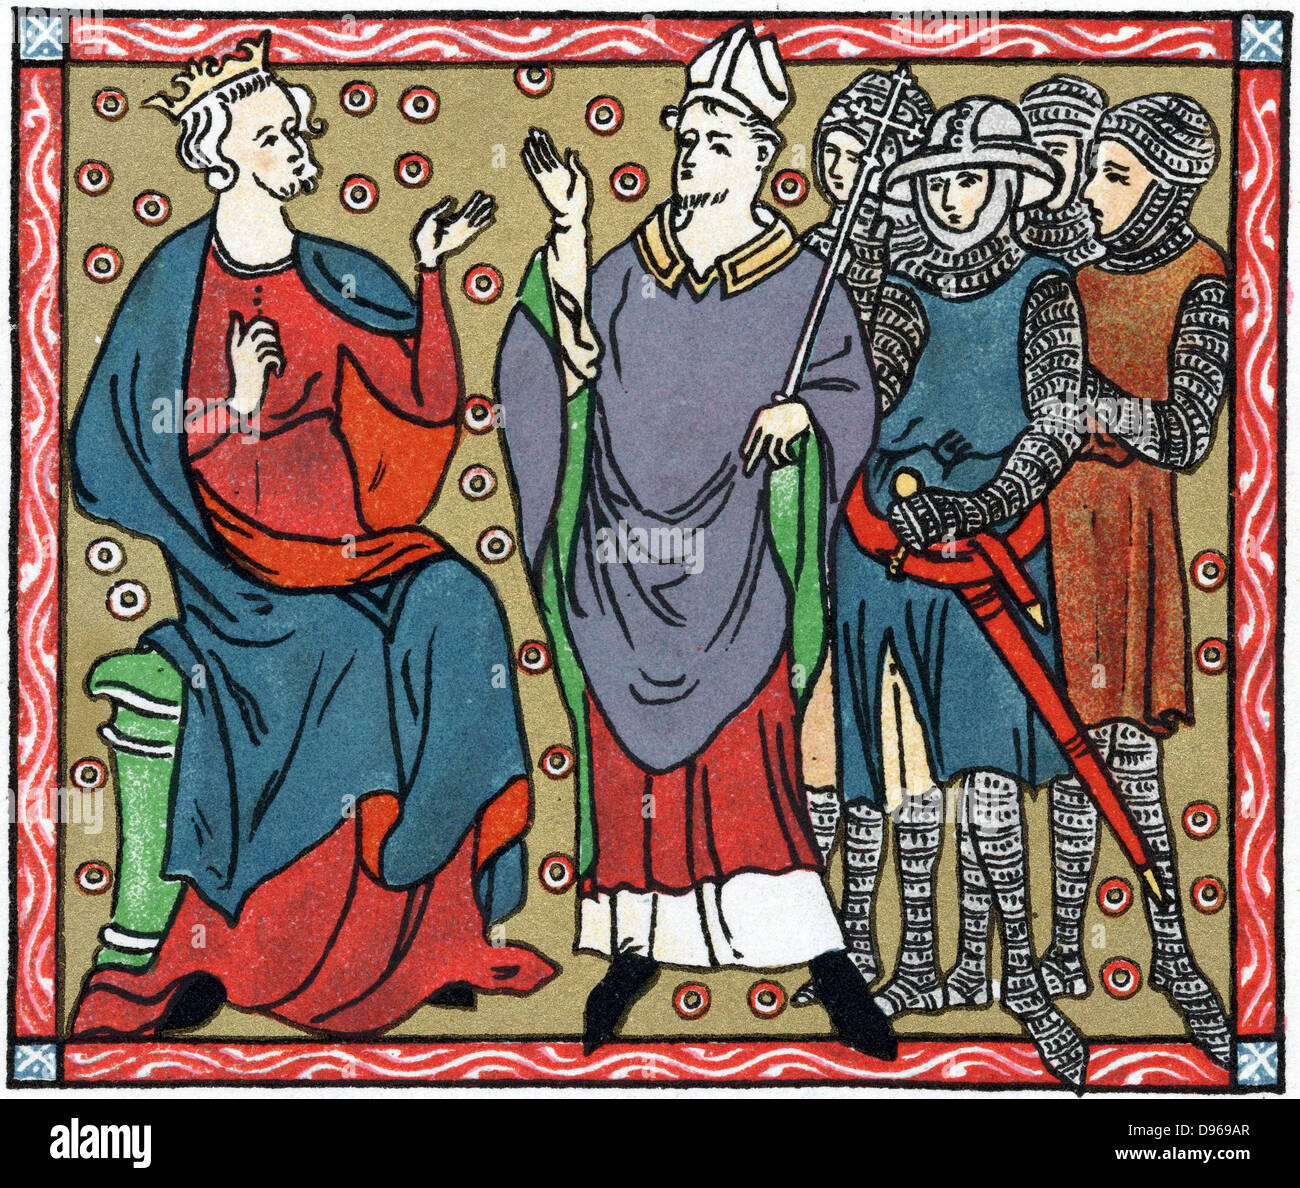 Henry II (1133-1189) King of England from 1154: Henry disputing with Thomas a Becket (1118-1170) Archbishop of Canterbury. - Stock Image